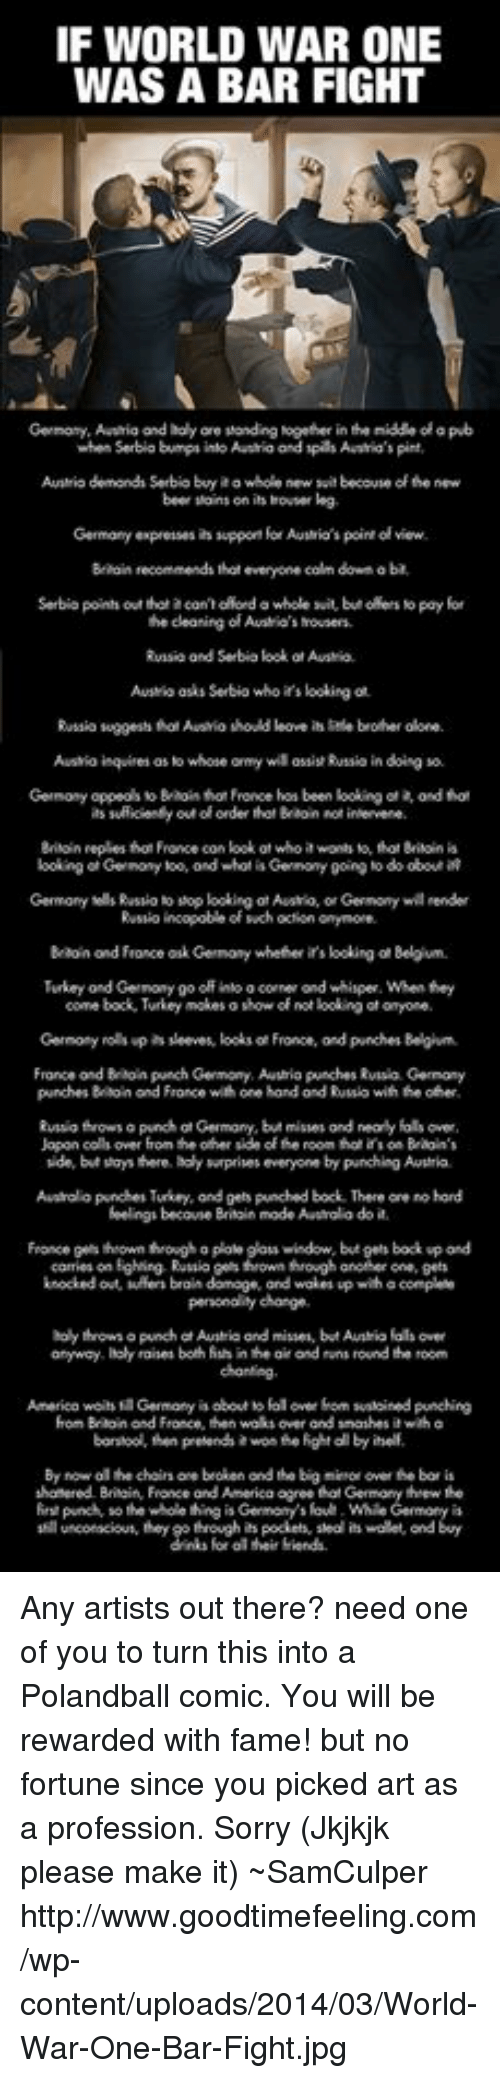 USABall: IF WORLD WAR ONE  WAS A BAR FIGHT  Germony,Aaaia and holy ore standing together in tenidde olapub  when Serbia bumps into and spas Austria's pint.  Ausrio demond Serbiobyaa whole new sitbecouse ofthe new  beer soins on is houser lag  Germany expresses  suppor for Austrio's point view.  Baain recommends thateveryone calm down aba  Serbia point out that acon oRondo whole suit, but oaets No pay for  the cleaning of Austio's mousers  Rvisio and Serbia kookofAusrio.  AutMk asks Serbio who looking ot  Russia suggests hol Ausio should loove brofher done.  Austio inquires  as whose ormy wil assist Russiain doing  booking Gernomy too, ond whot is Germony going o do  obout  Rvsnio incopobeof such octon onymore.  Turkey ond Gernony go off inloo corner ond whisper,When they  France ondBrion purch Germony, Auwtrio punches Rvnsa Germany  punches Baon ond Fronce with one hond ondRusko with other.  wde, bit says there. holy surprises everyone by punching Awurka.  Ausrolopundhen Turkey, and gets punched book There ore hord  feelings becouse mode Aastalo do it.  personally change.  holy thrown opunchd Austria and misses, but Auntio dts over  raises both fishinheairond rnsround the room  anyway  Hon Braoin France, ten waksover ond snashes wiha  shonered Bilain Fronce ord America agree  punch so the whole thing is Genmoy's foul. While Germory is  unconscious, they gothrough is pockets, stood is wolet ond buy  their fiends. Any artists out there? need one of you to turn this into a Polandball comic. You will be rewarded with fame! but no fortune since you picked art as a profession. Sorry  (Jkjkjk please make it)  ~SamCulper   http://www.goodtimefeeling.com/wp-content/uploads/2014/03/World-War-One-Bar-Fight.jpg